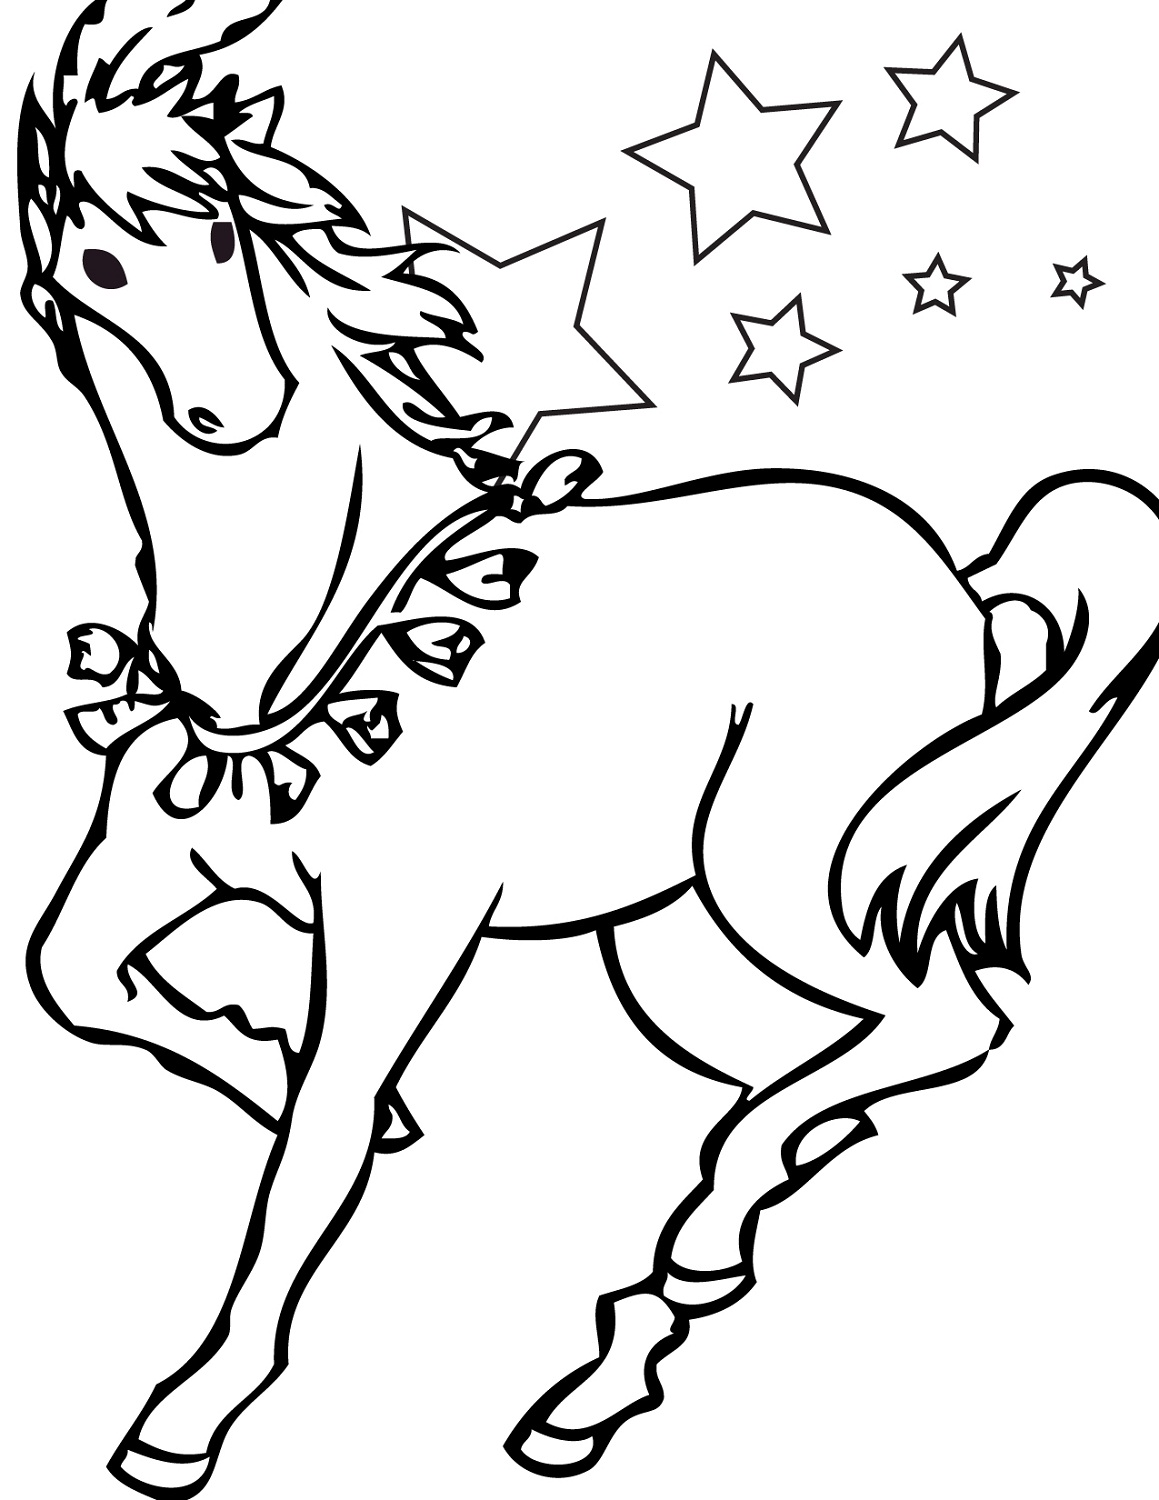 coloring pages of horse running stallion horse coloring pages of pages coloring horse